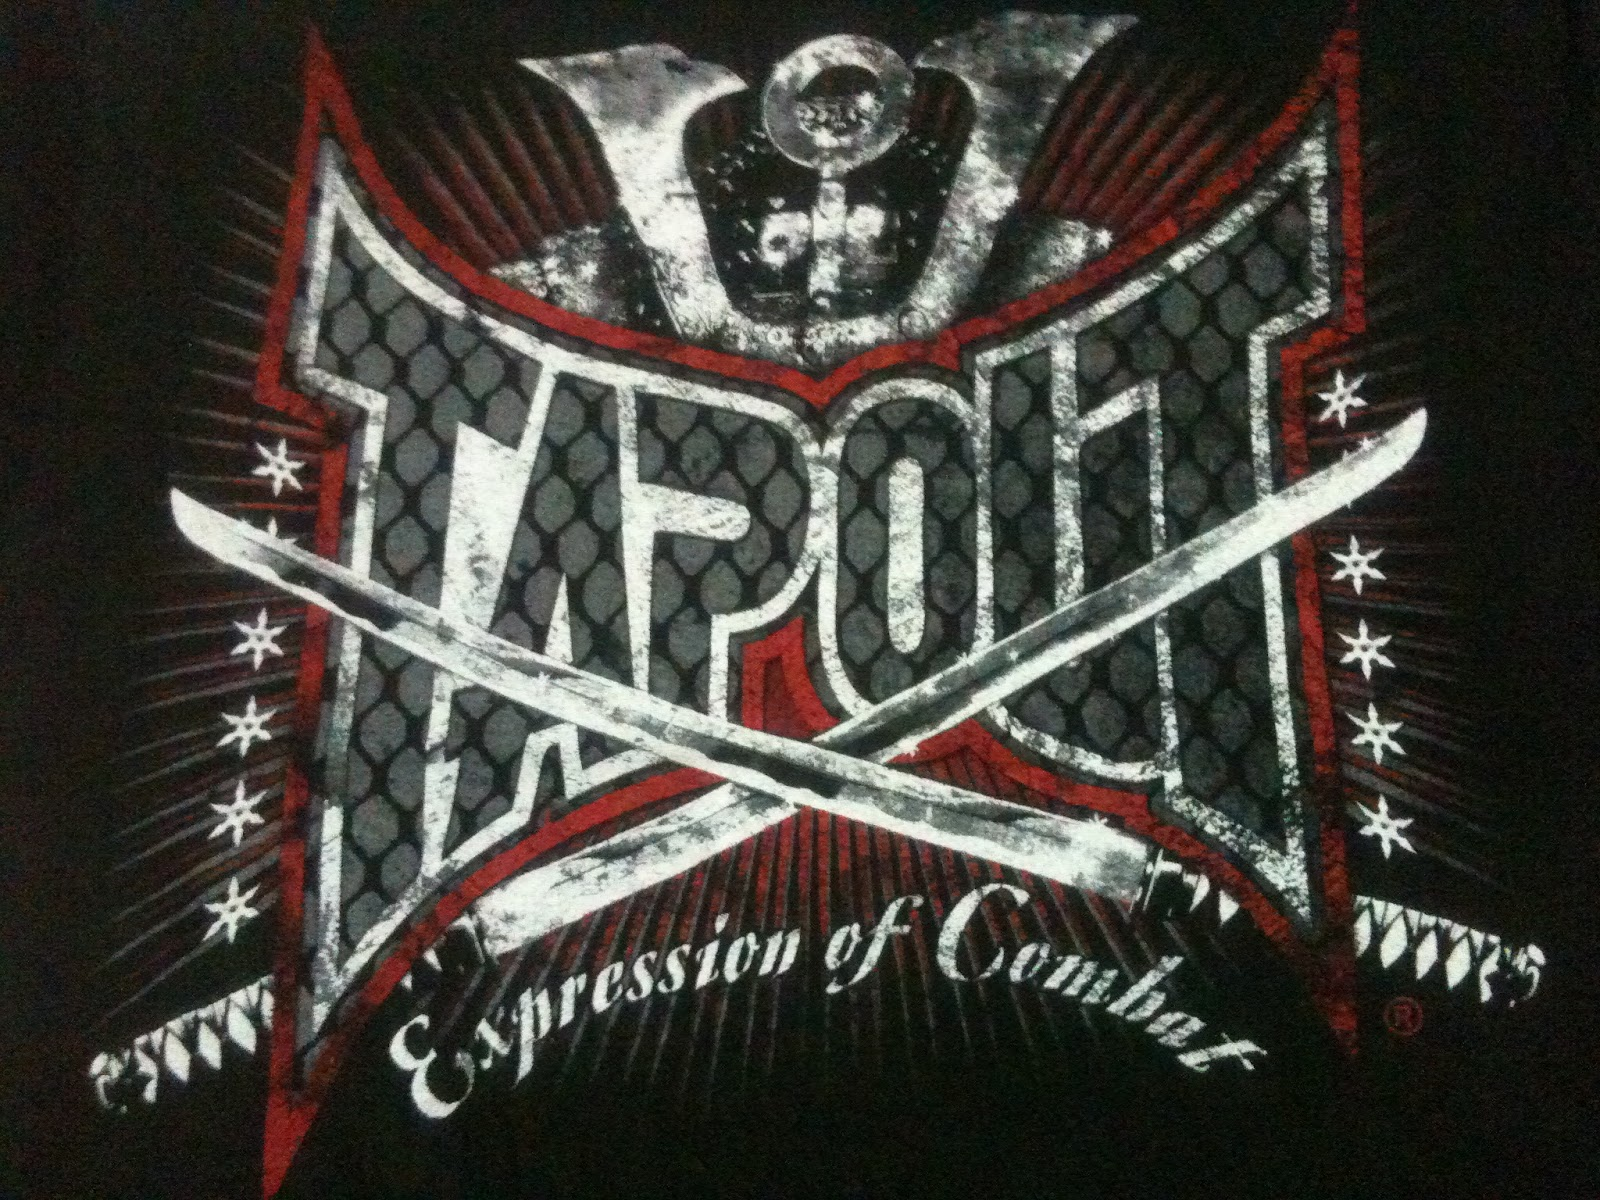 Tapout Wallpaper 3001